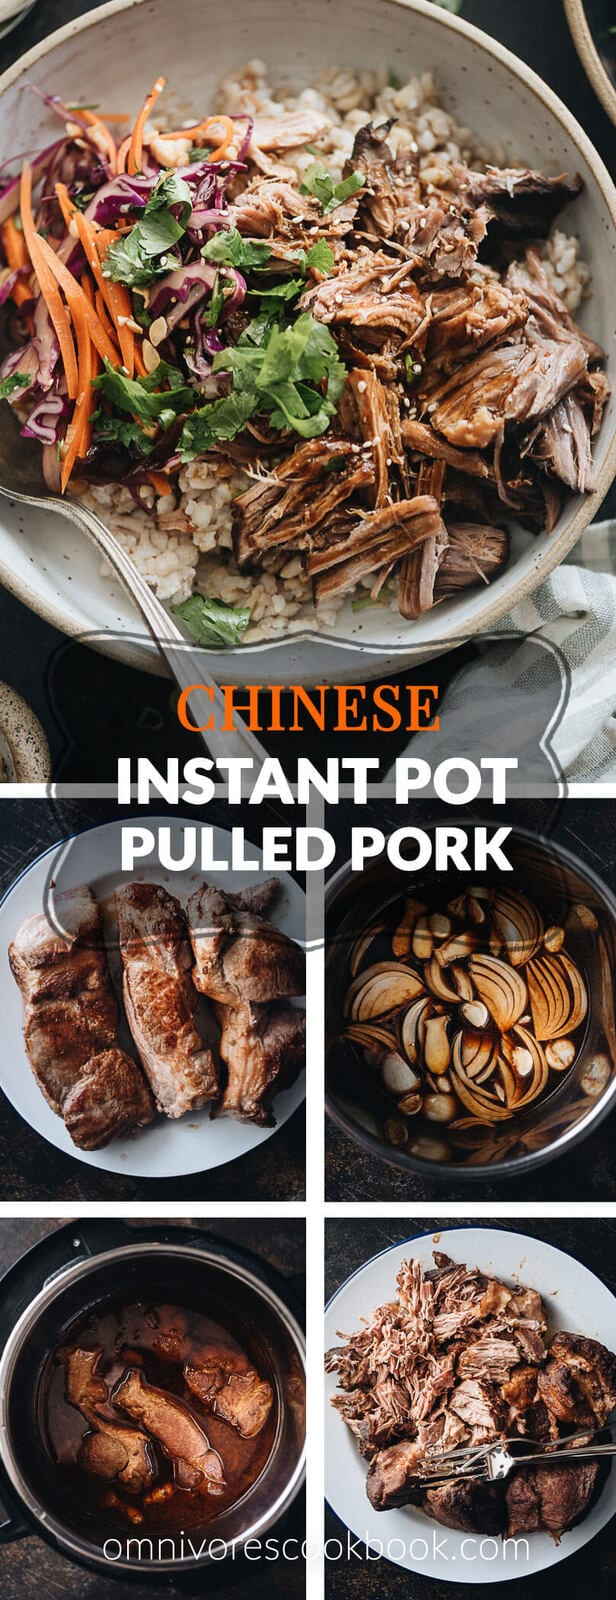 Asian-Style Instant Pot Pulled Pork - Tender, juicy pork with a melt-in-your-mouth texture made in a rich Asian sauce. It's just about everything you need for a weekday dinner because it takes no time to put together. #easy #glutenfree #recipe #shoulder